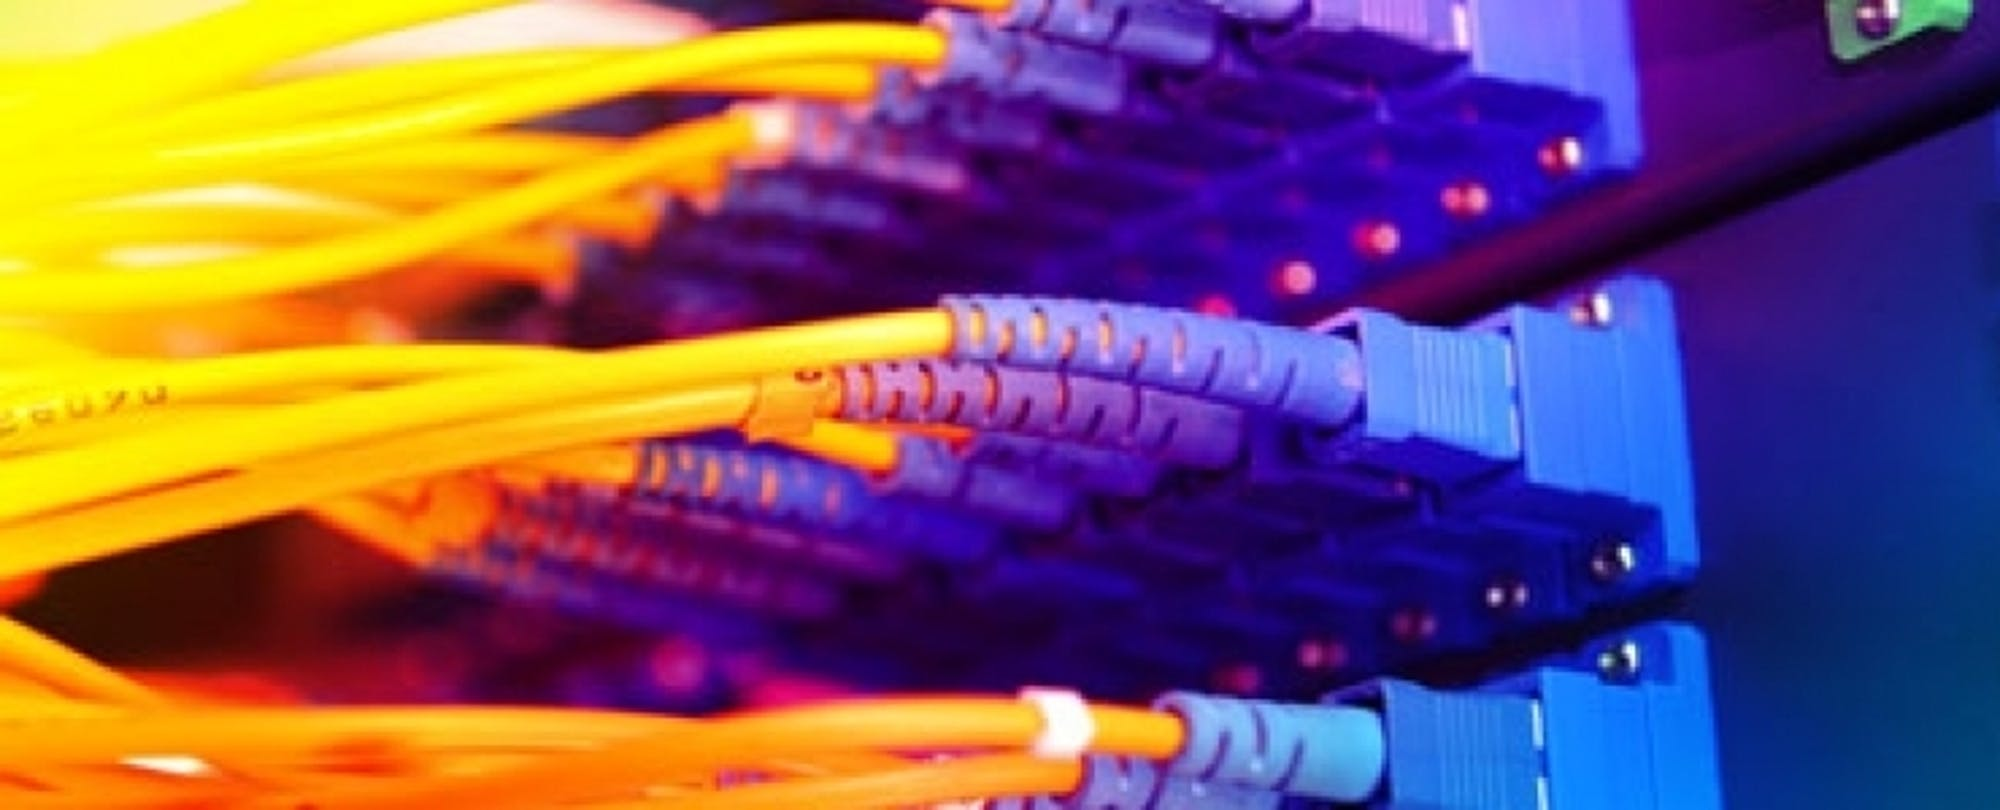 FCC: Feedback Requested for Reforming E-Rate